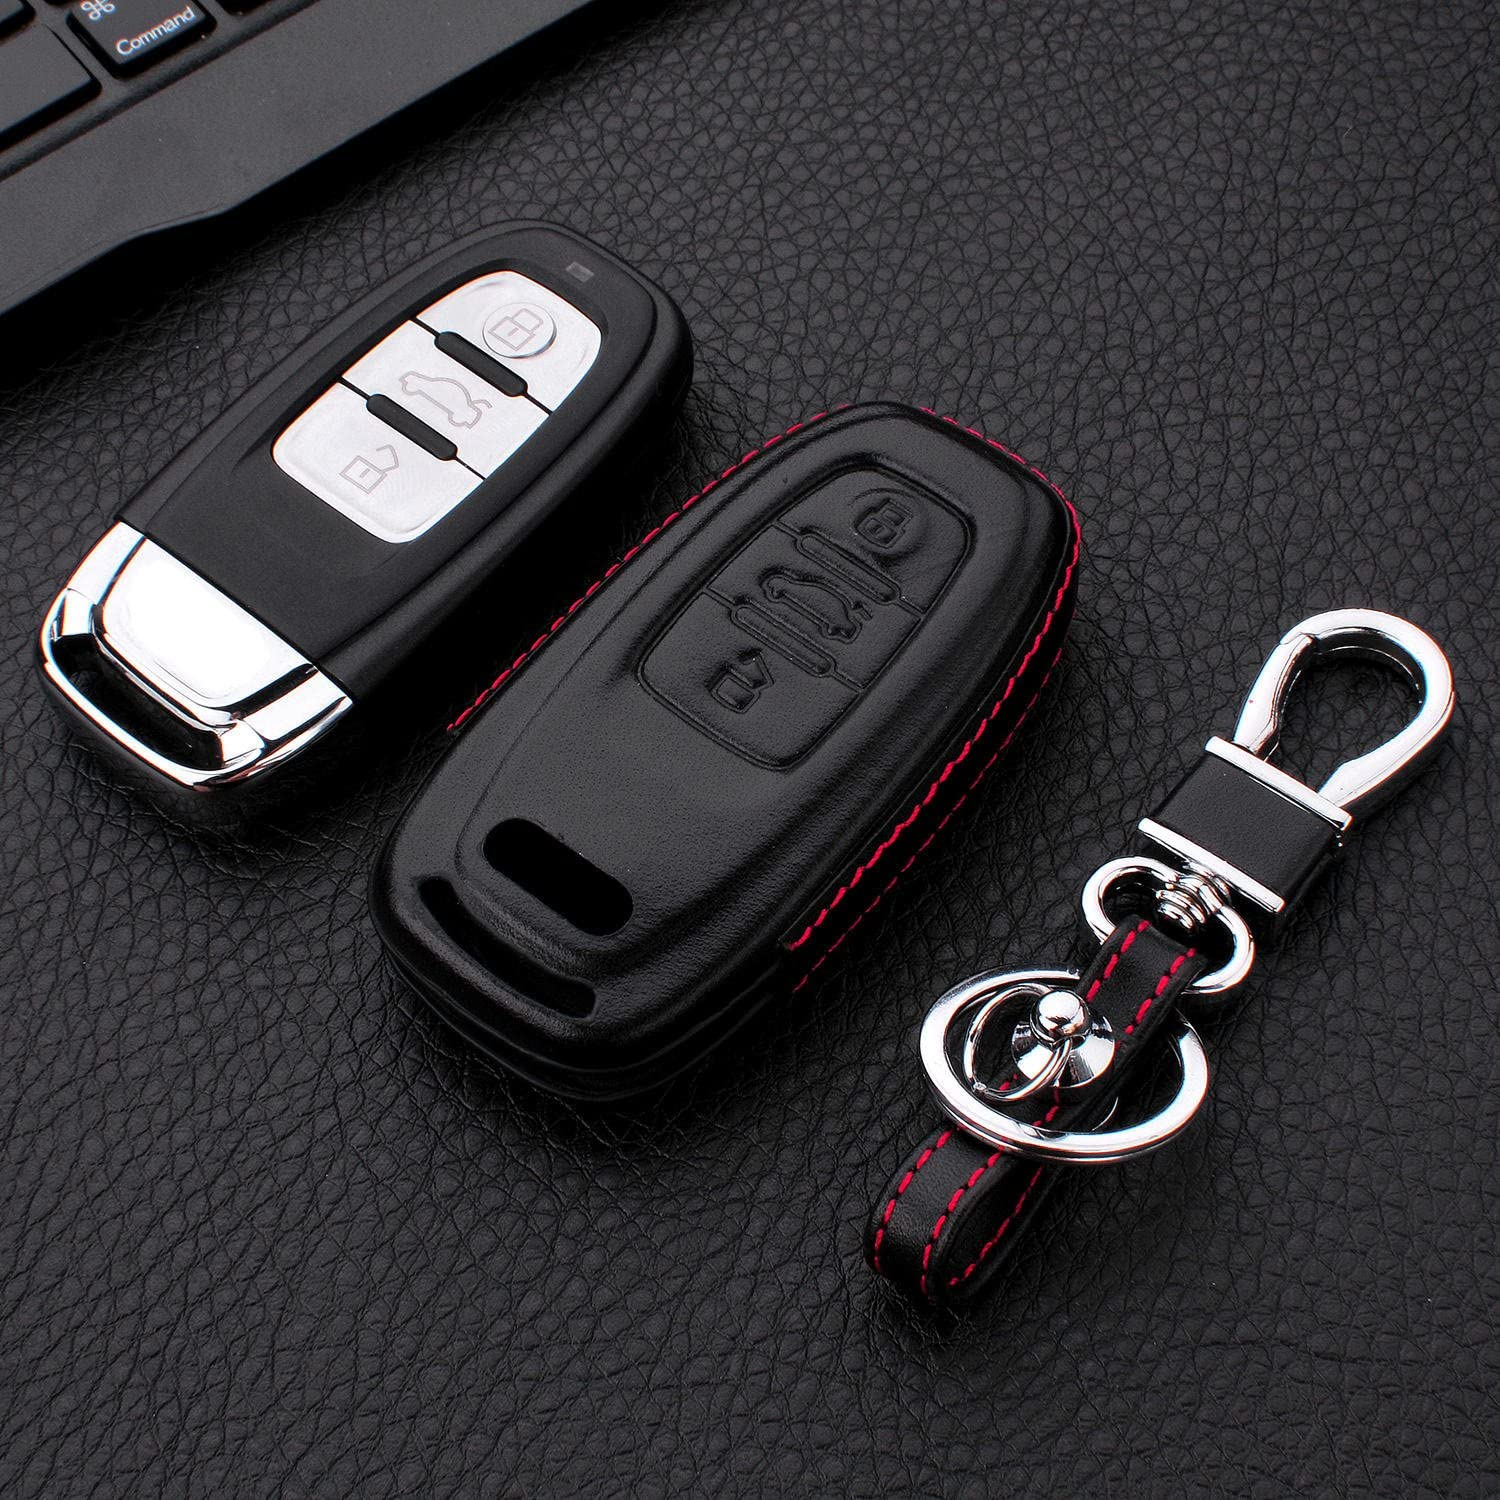 Car Remote Key Fob Case for Audi A4L A5 A6L A7 A8 S5 S6 S7 S8 RS5 RS7 Q5 SQ5 Fob Remote Key M.JVisun Soft TPU Case Cover Protector Case for Audi Smart Key Fob Metal Keychain Glossy Silver